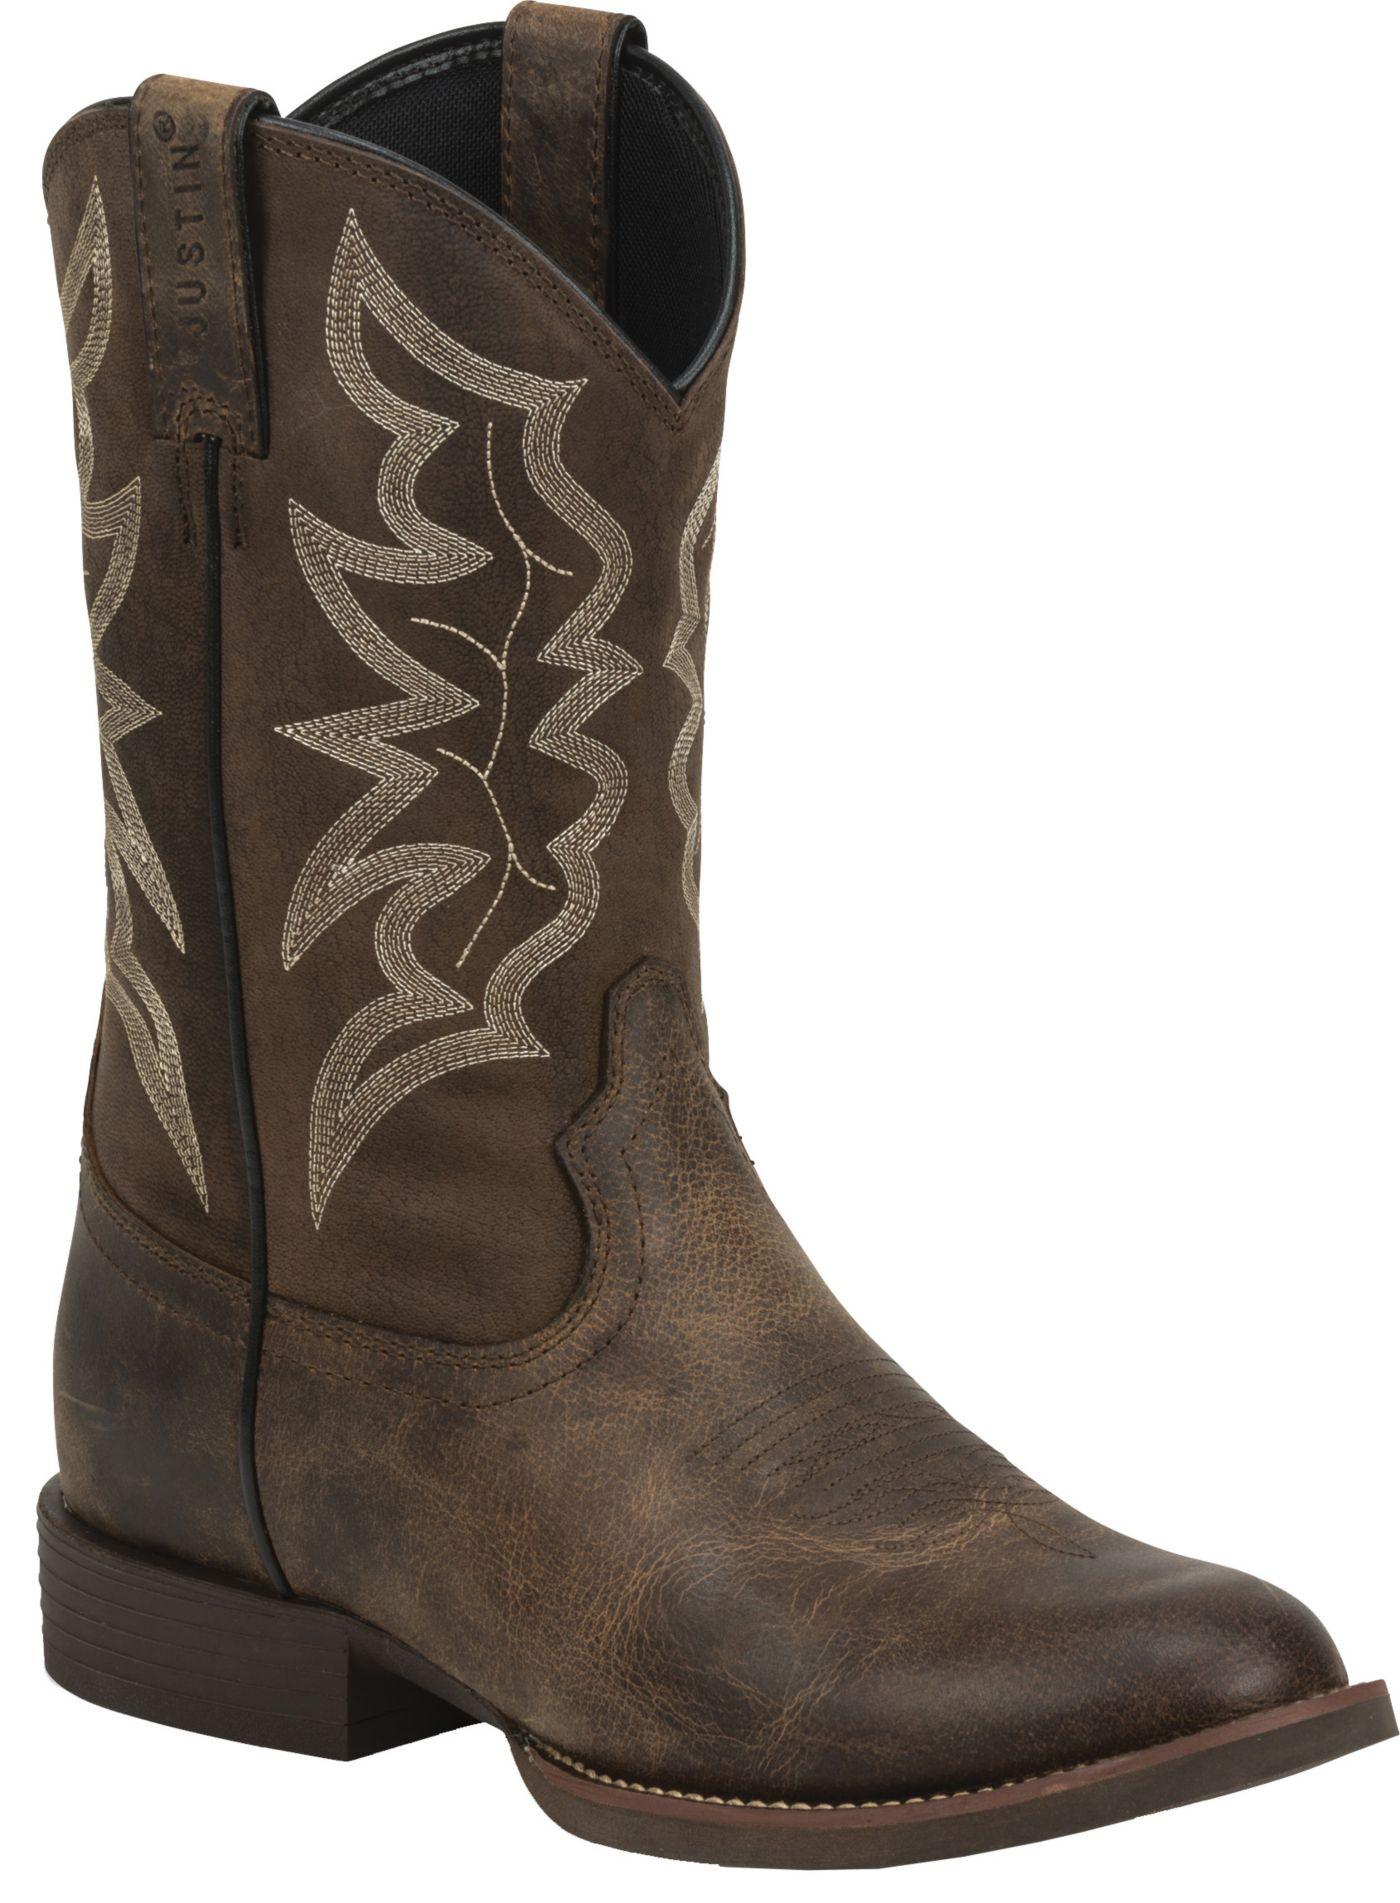 Justin Men's Buster Distressed Western Boots